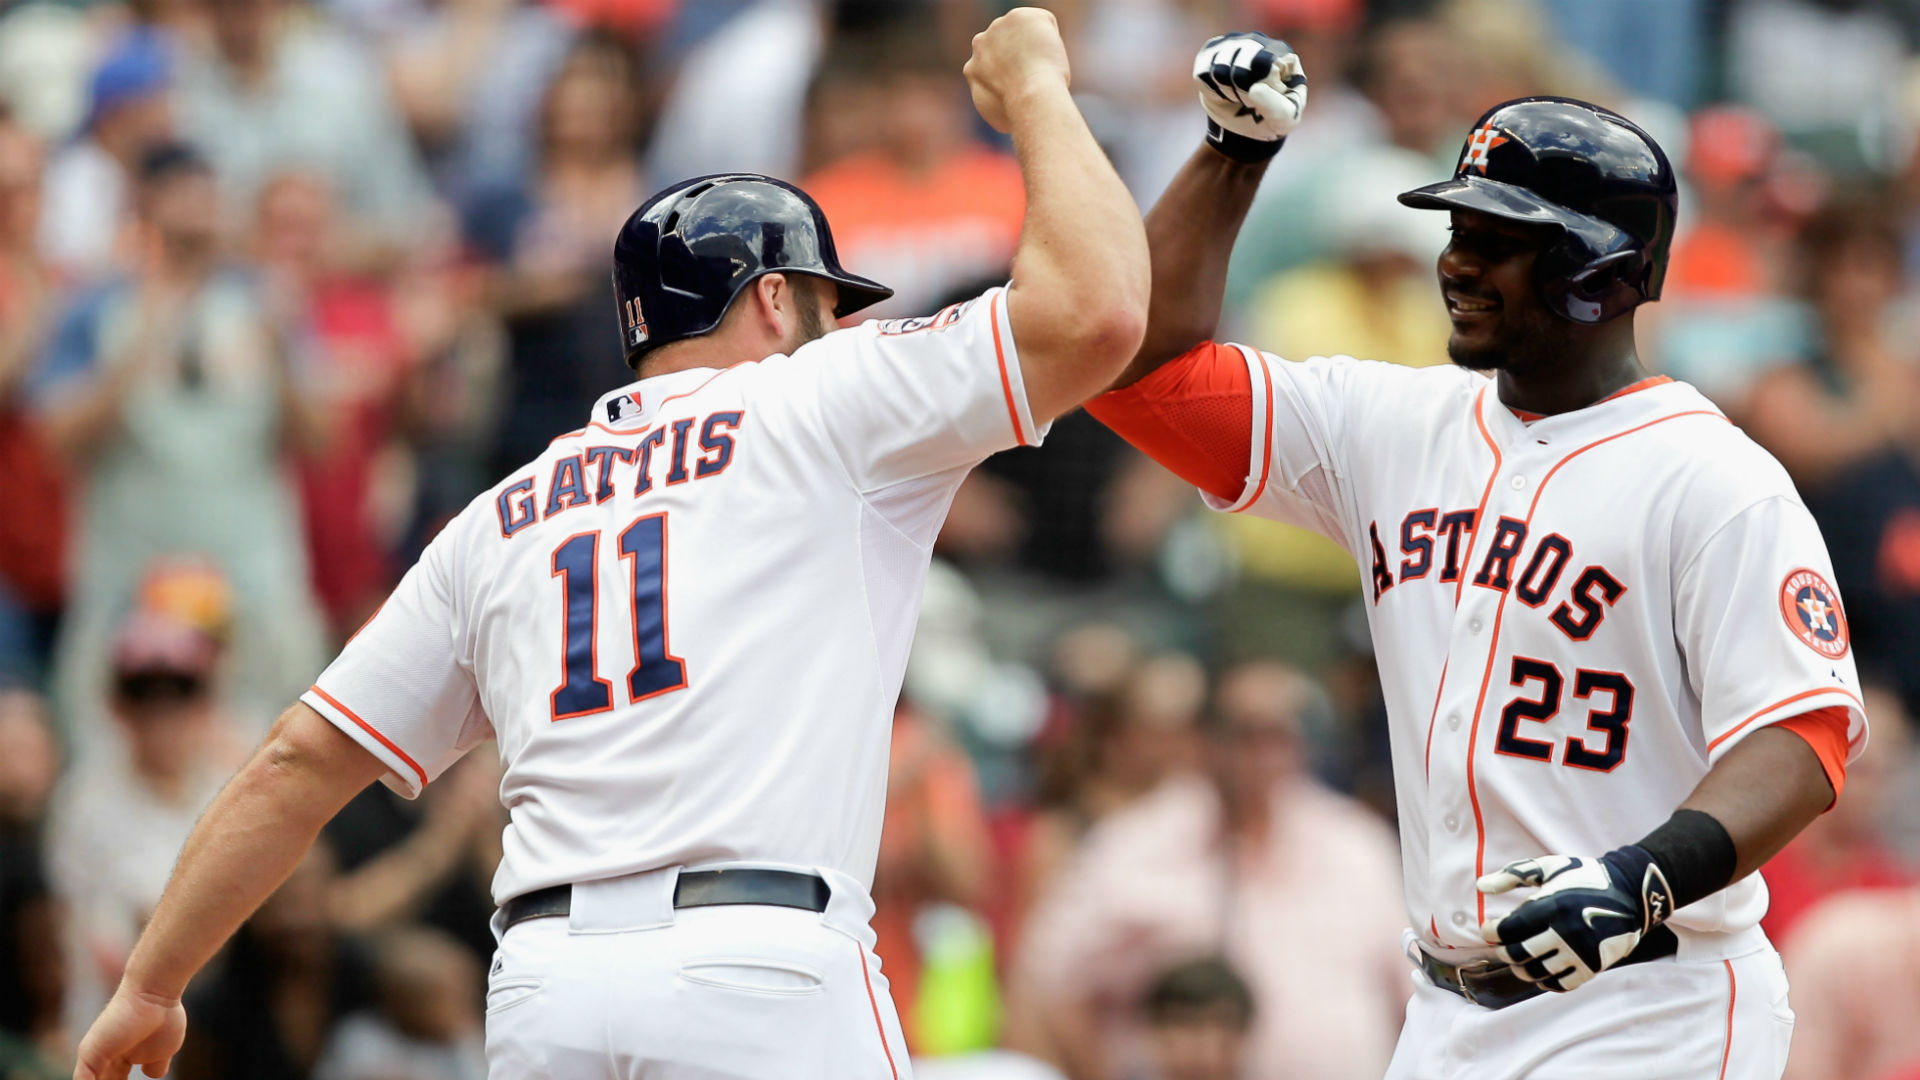 MLB Nightly 9: Astros stay hot in 10th straight win; Cardinals walk off again